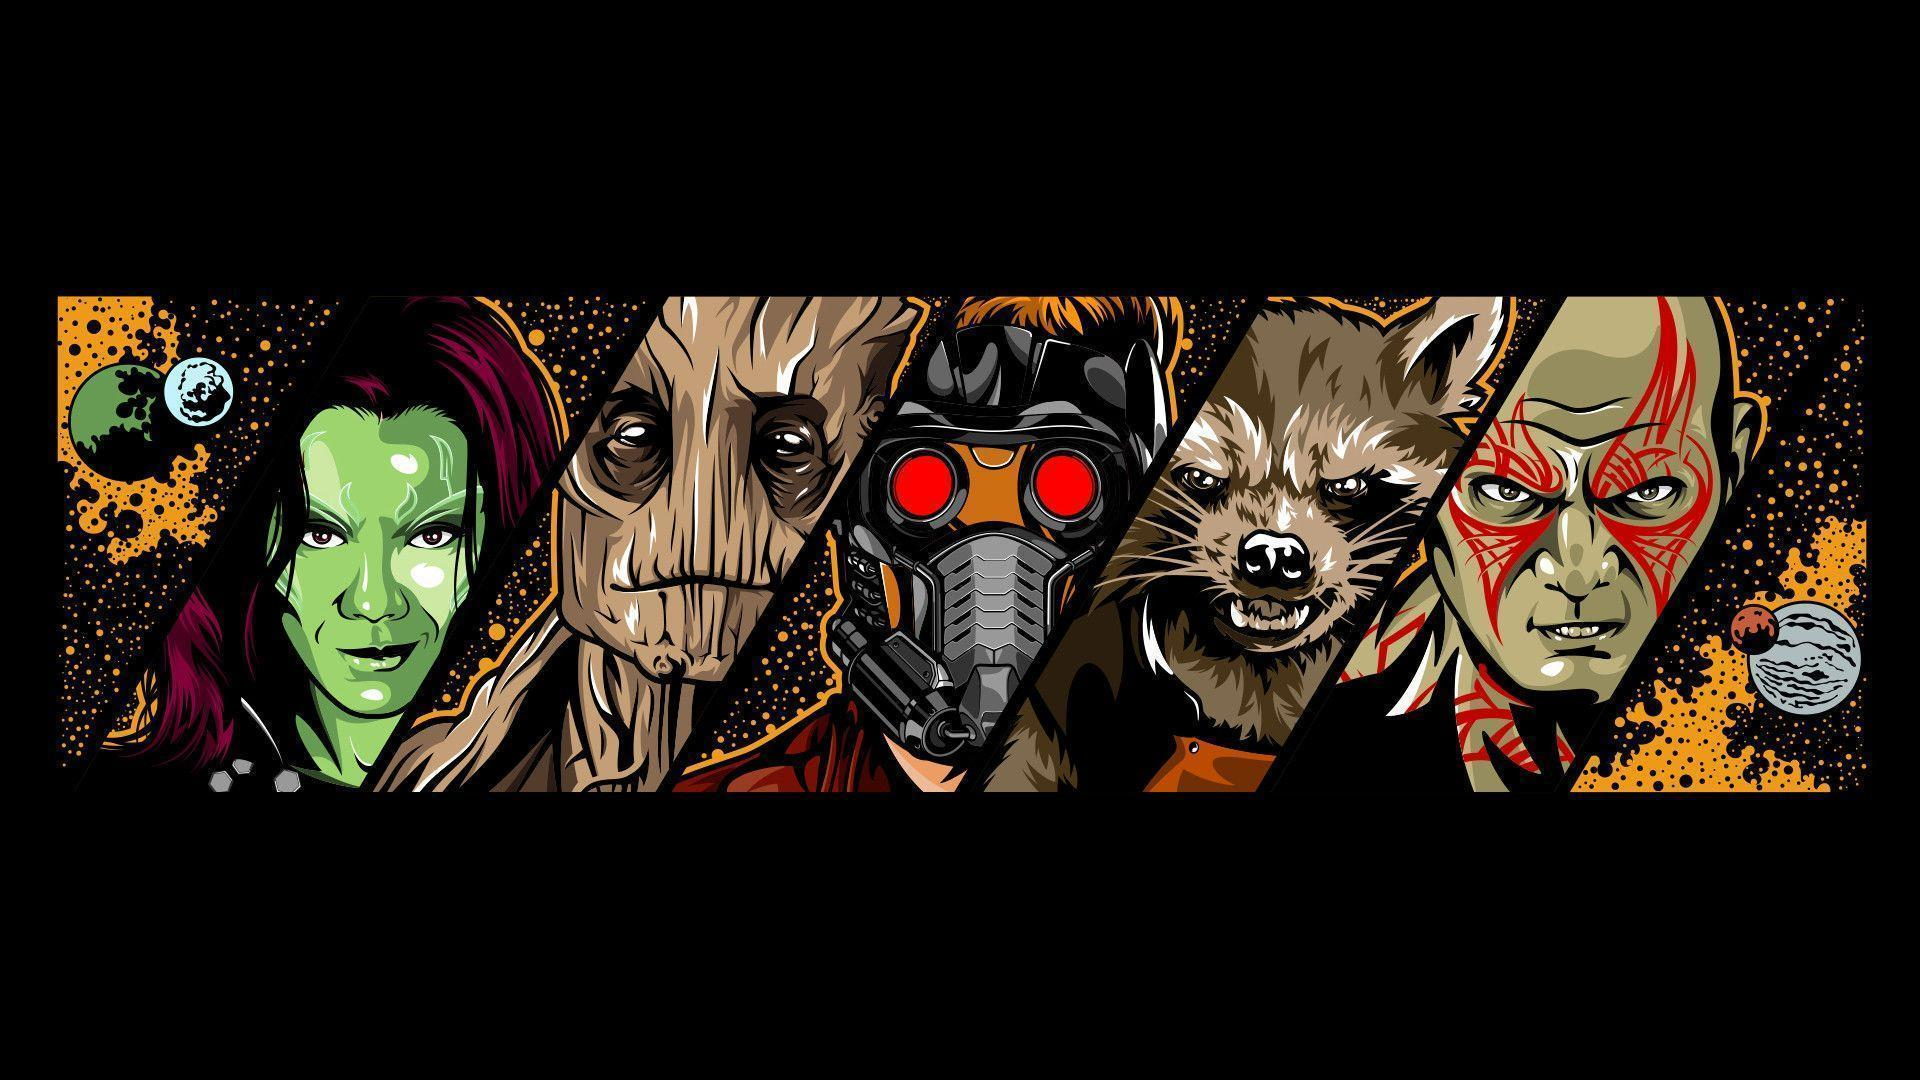 guardians of the galaxy wallpaper 1920x1080